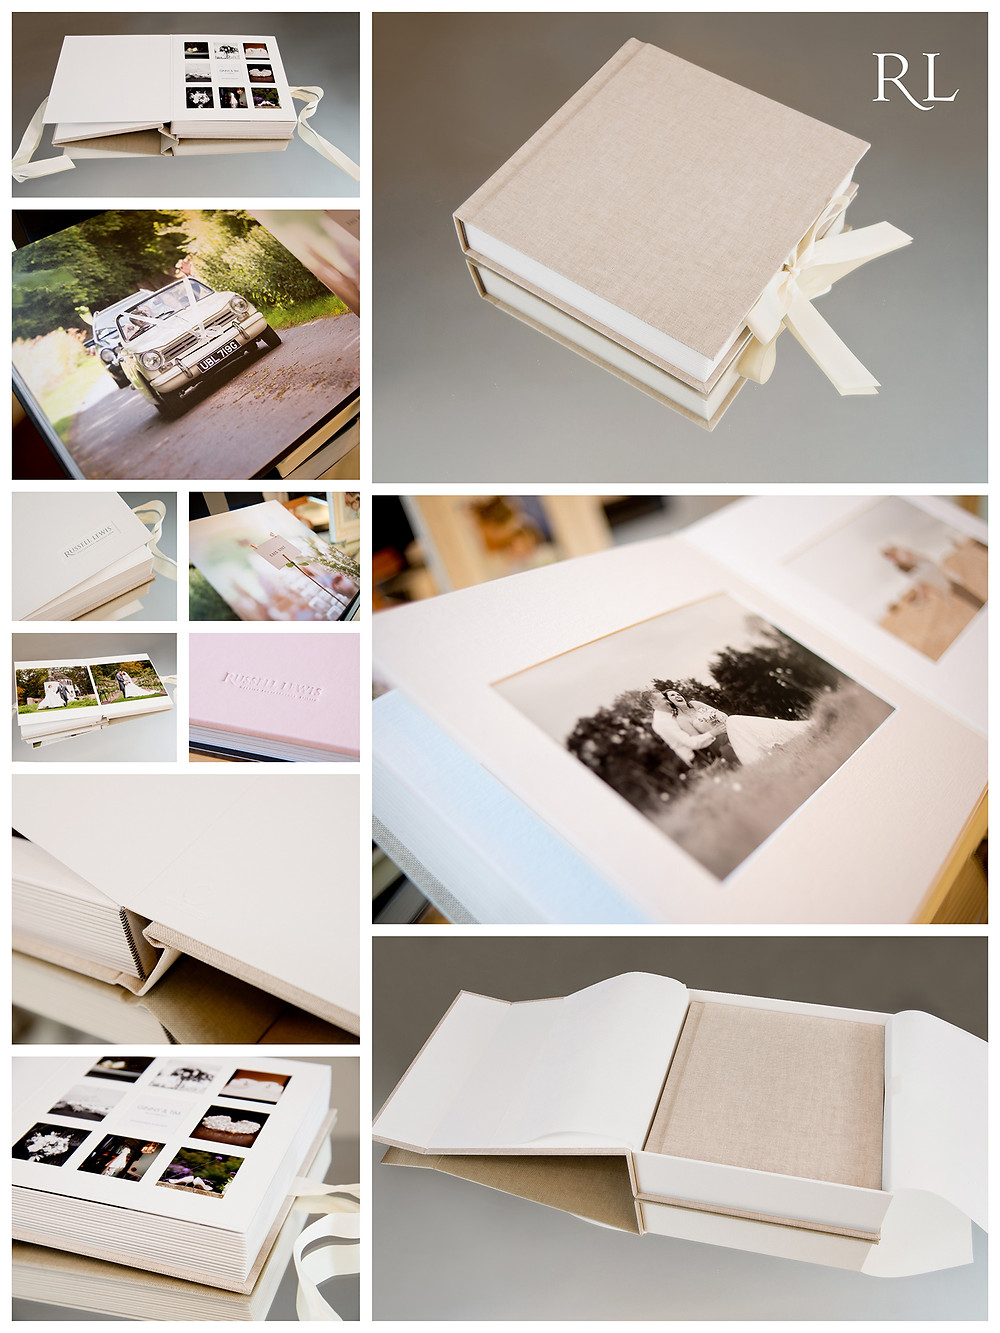 Russell Lewis Wedding Albums